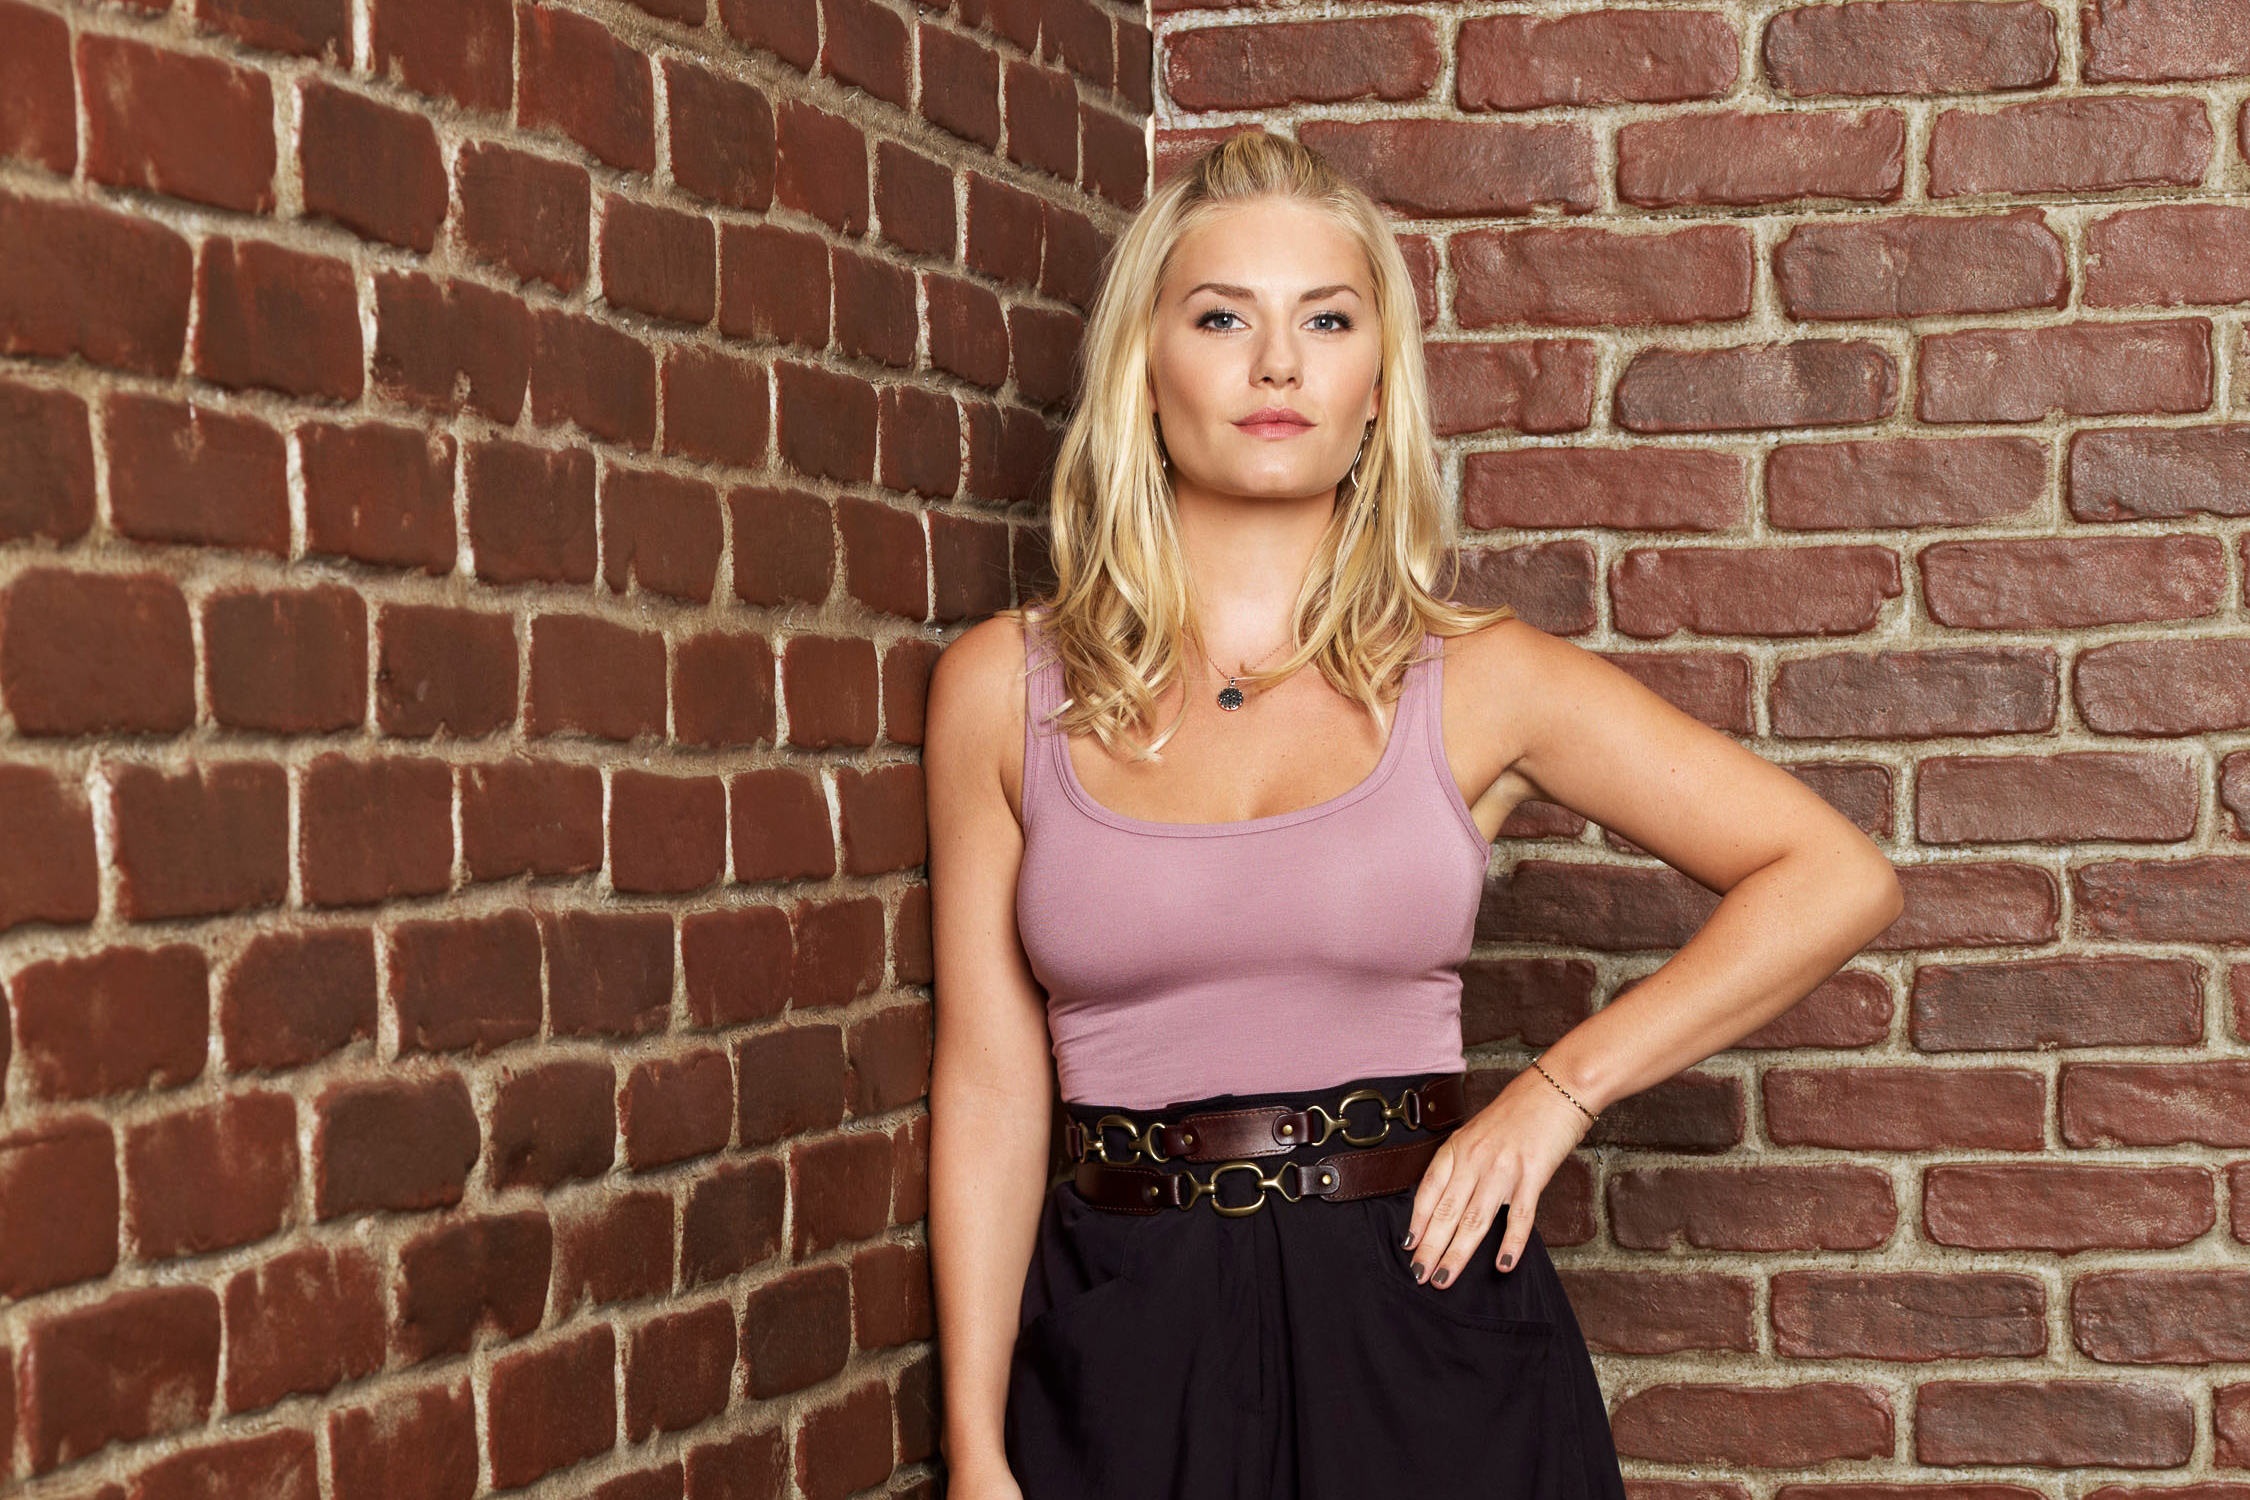 Titanfall Wallpaper Hd Elisha Cuthbert Wallpapers Pictures Images